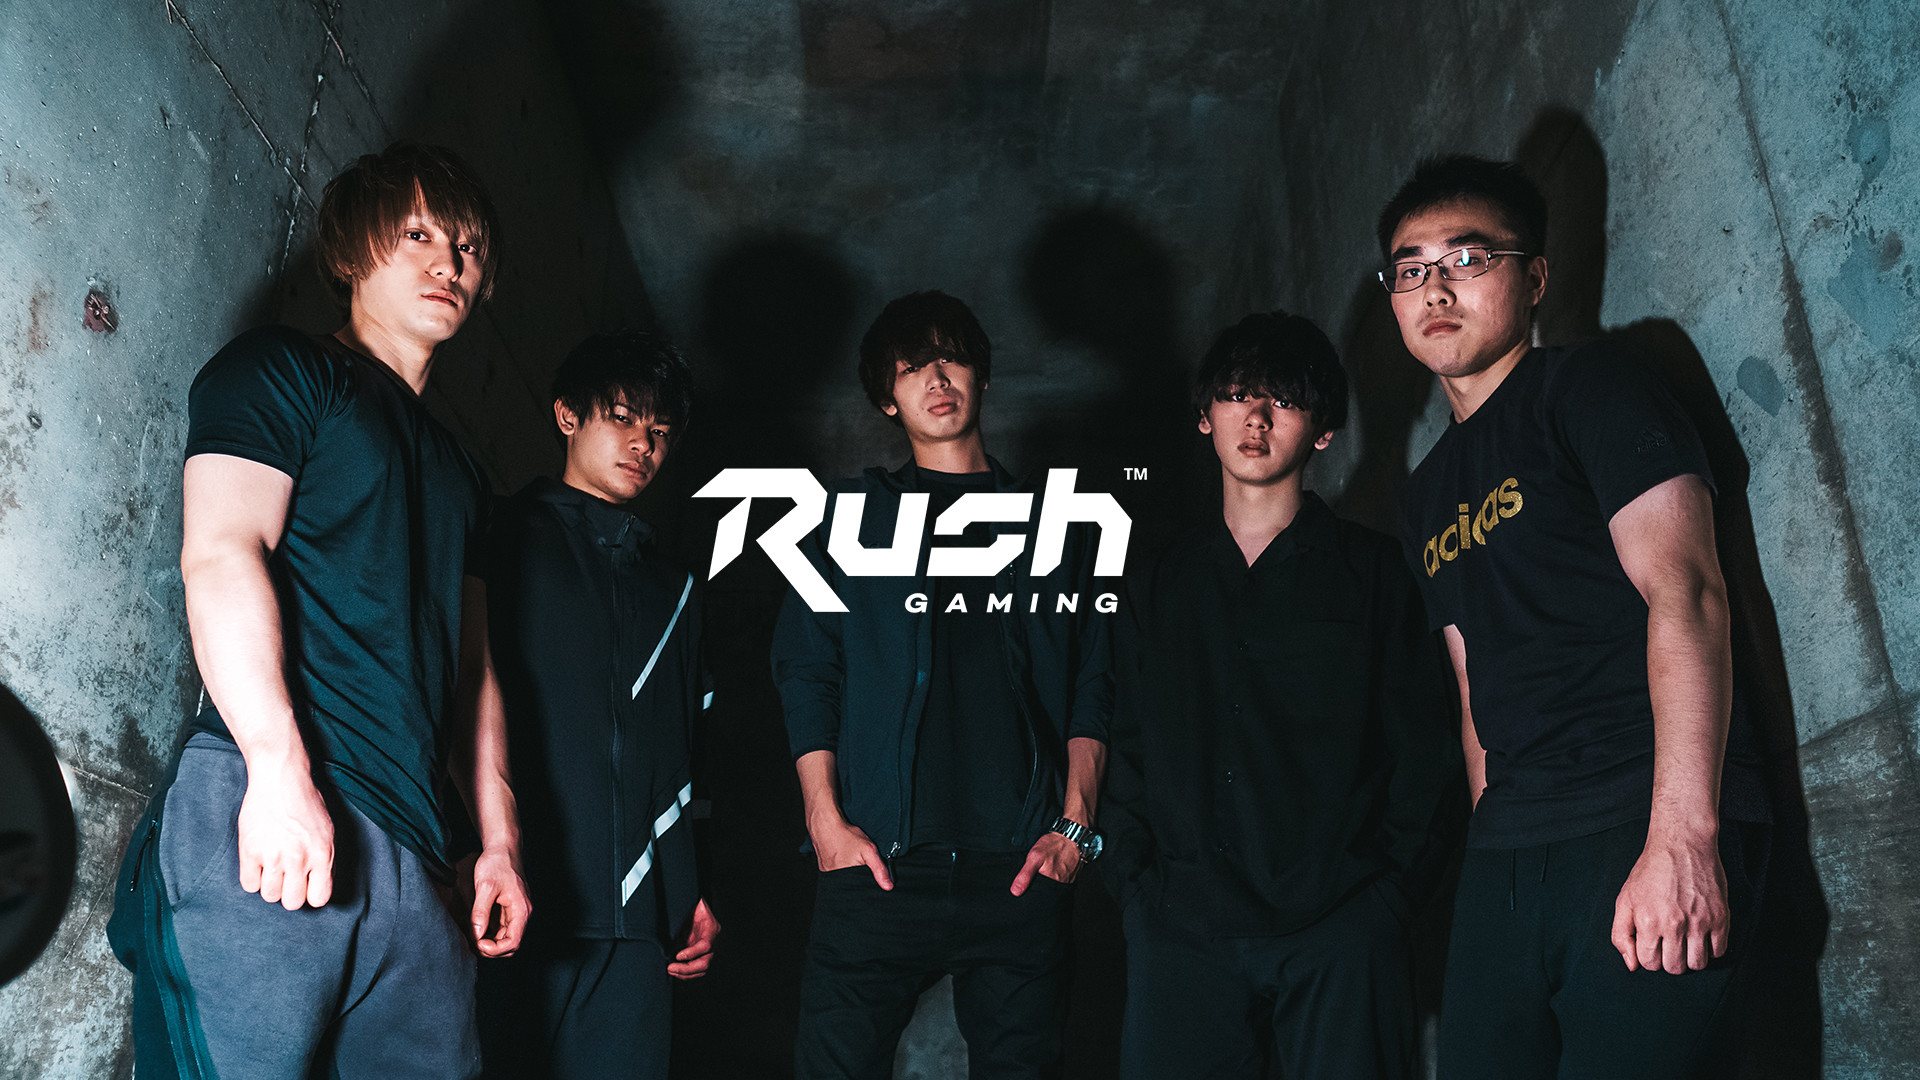 Rush Gaming Call Of Duty Professional Team Powered By Wekids